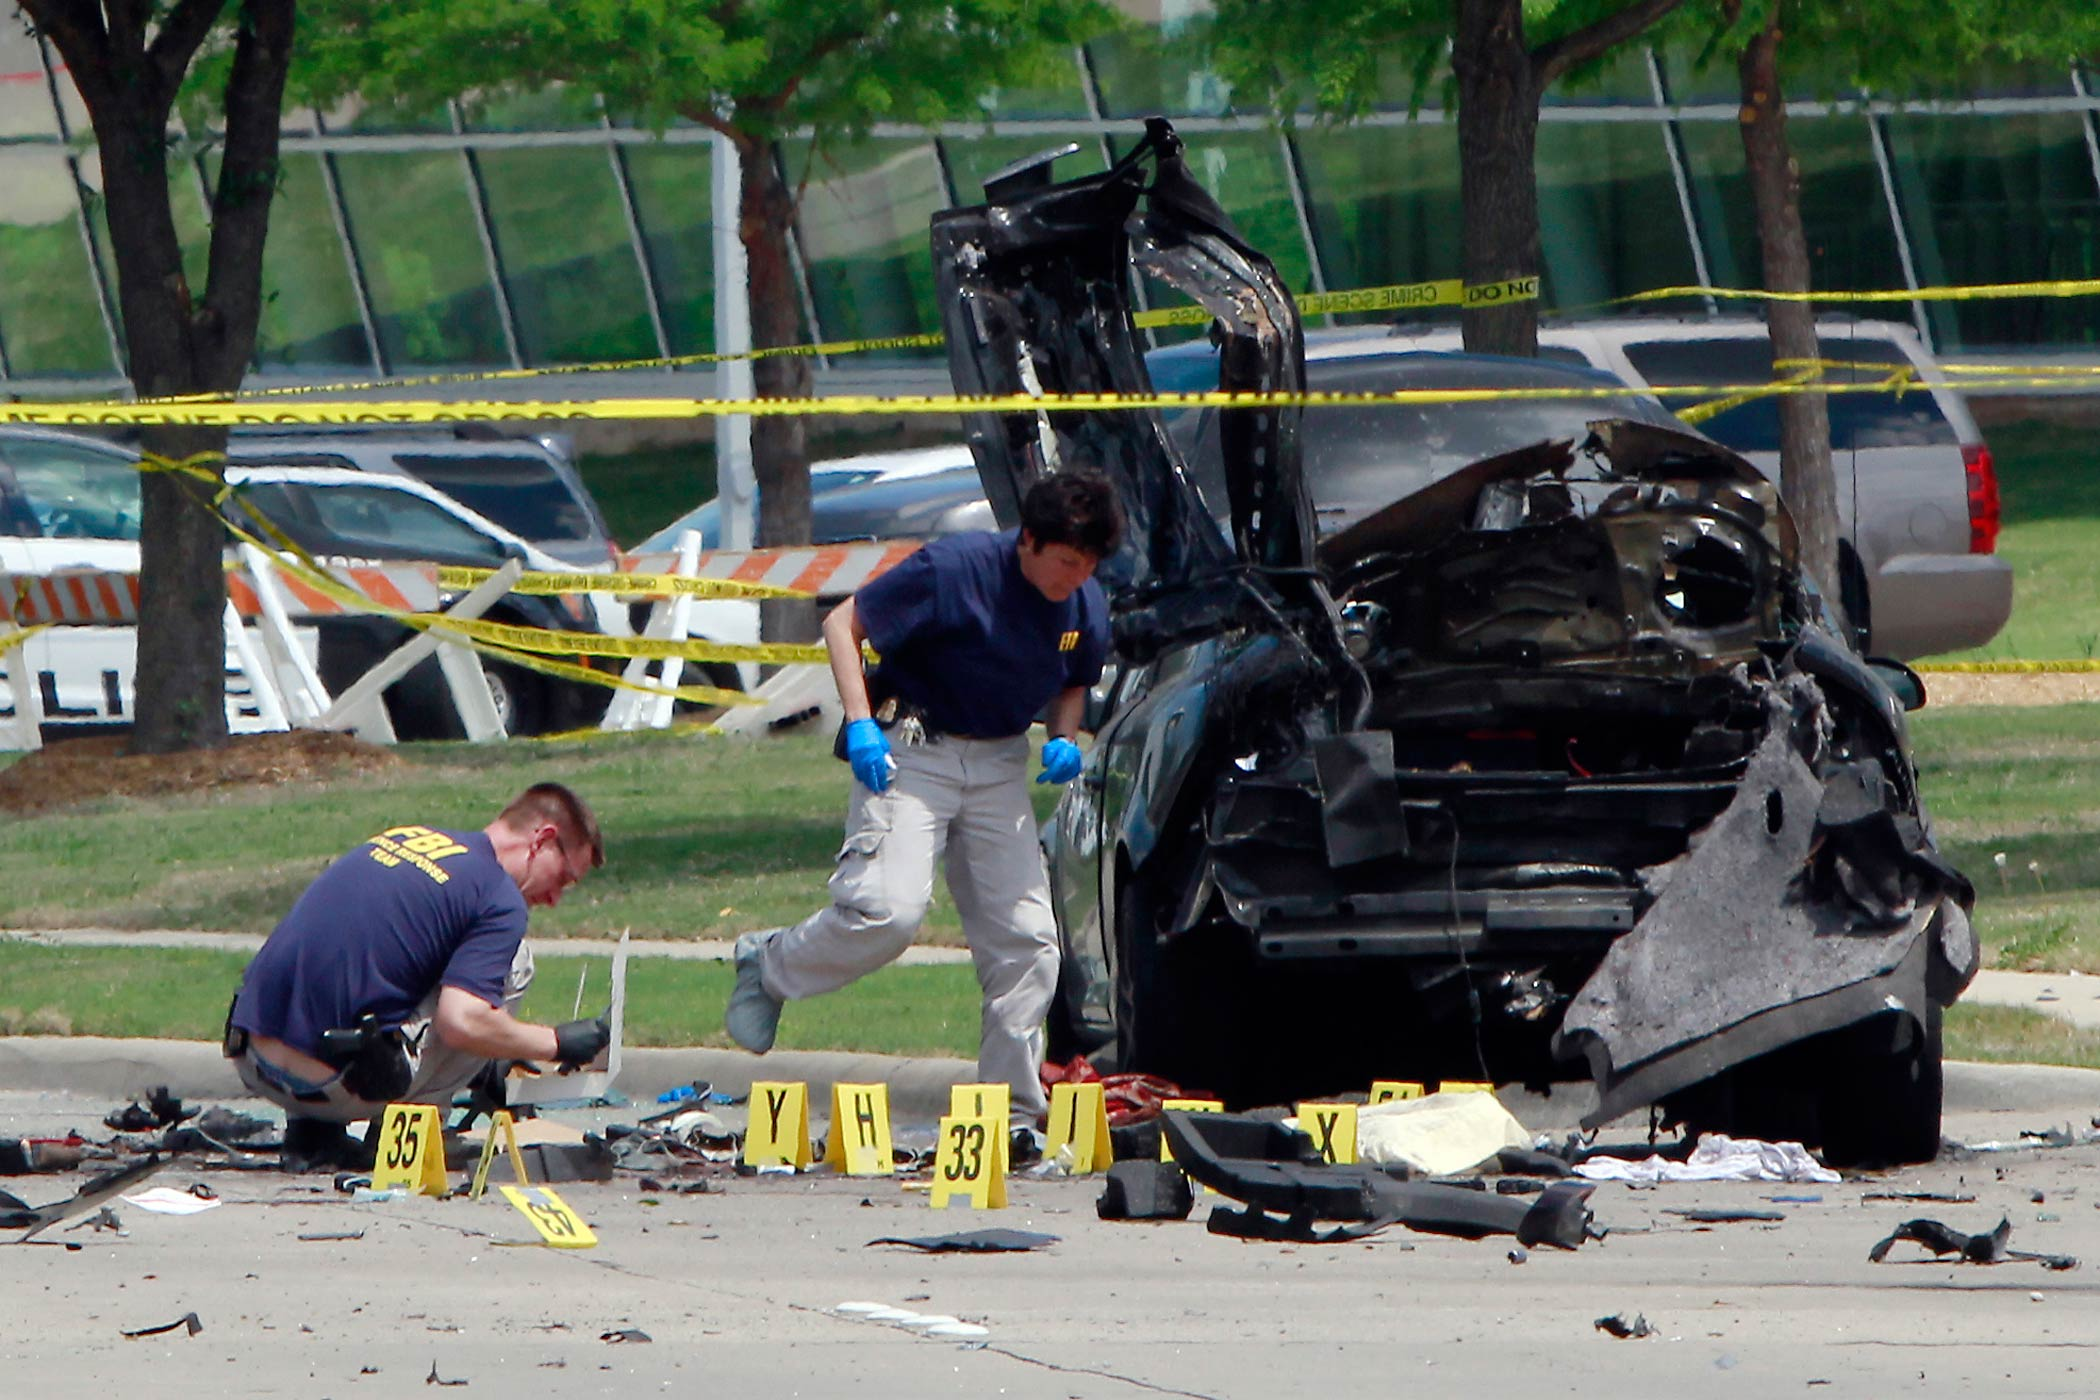 FBI investigators work a crime scene outside of the Curtis Culwell Center on May 04, 2015 in Garland, TX.